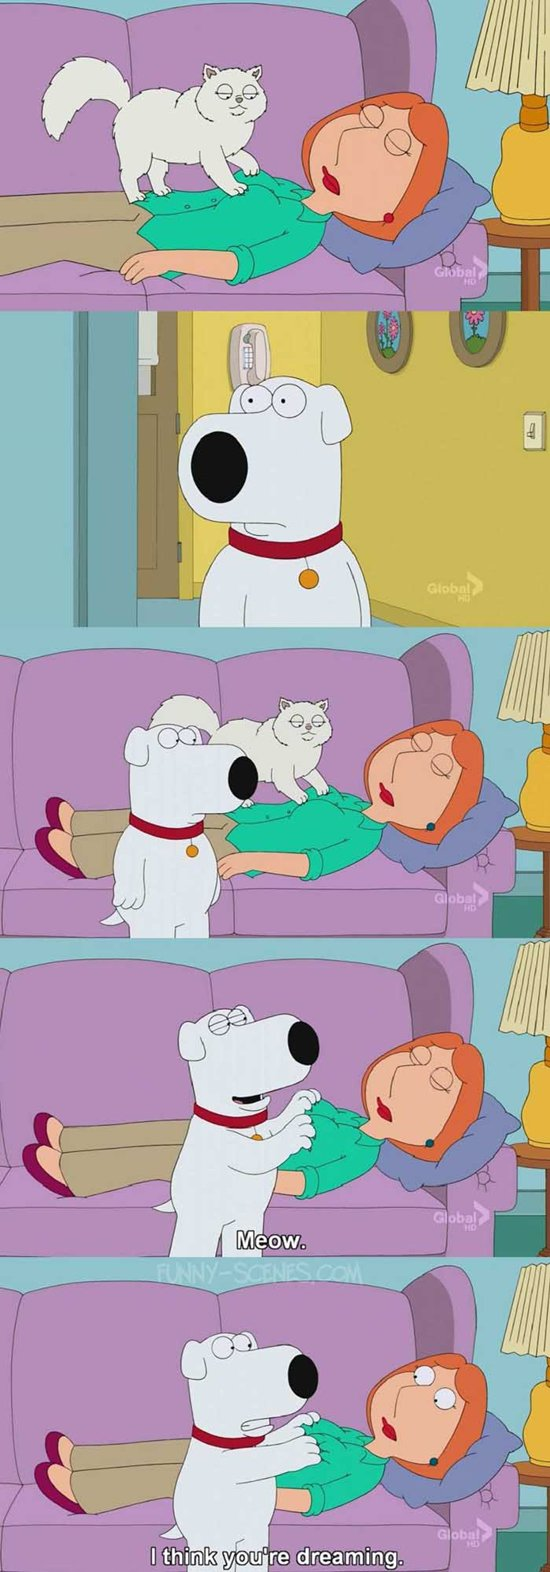 best-family-guy-moments-meow